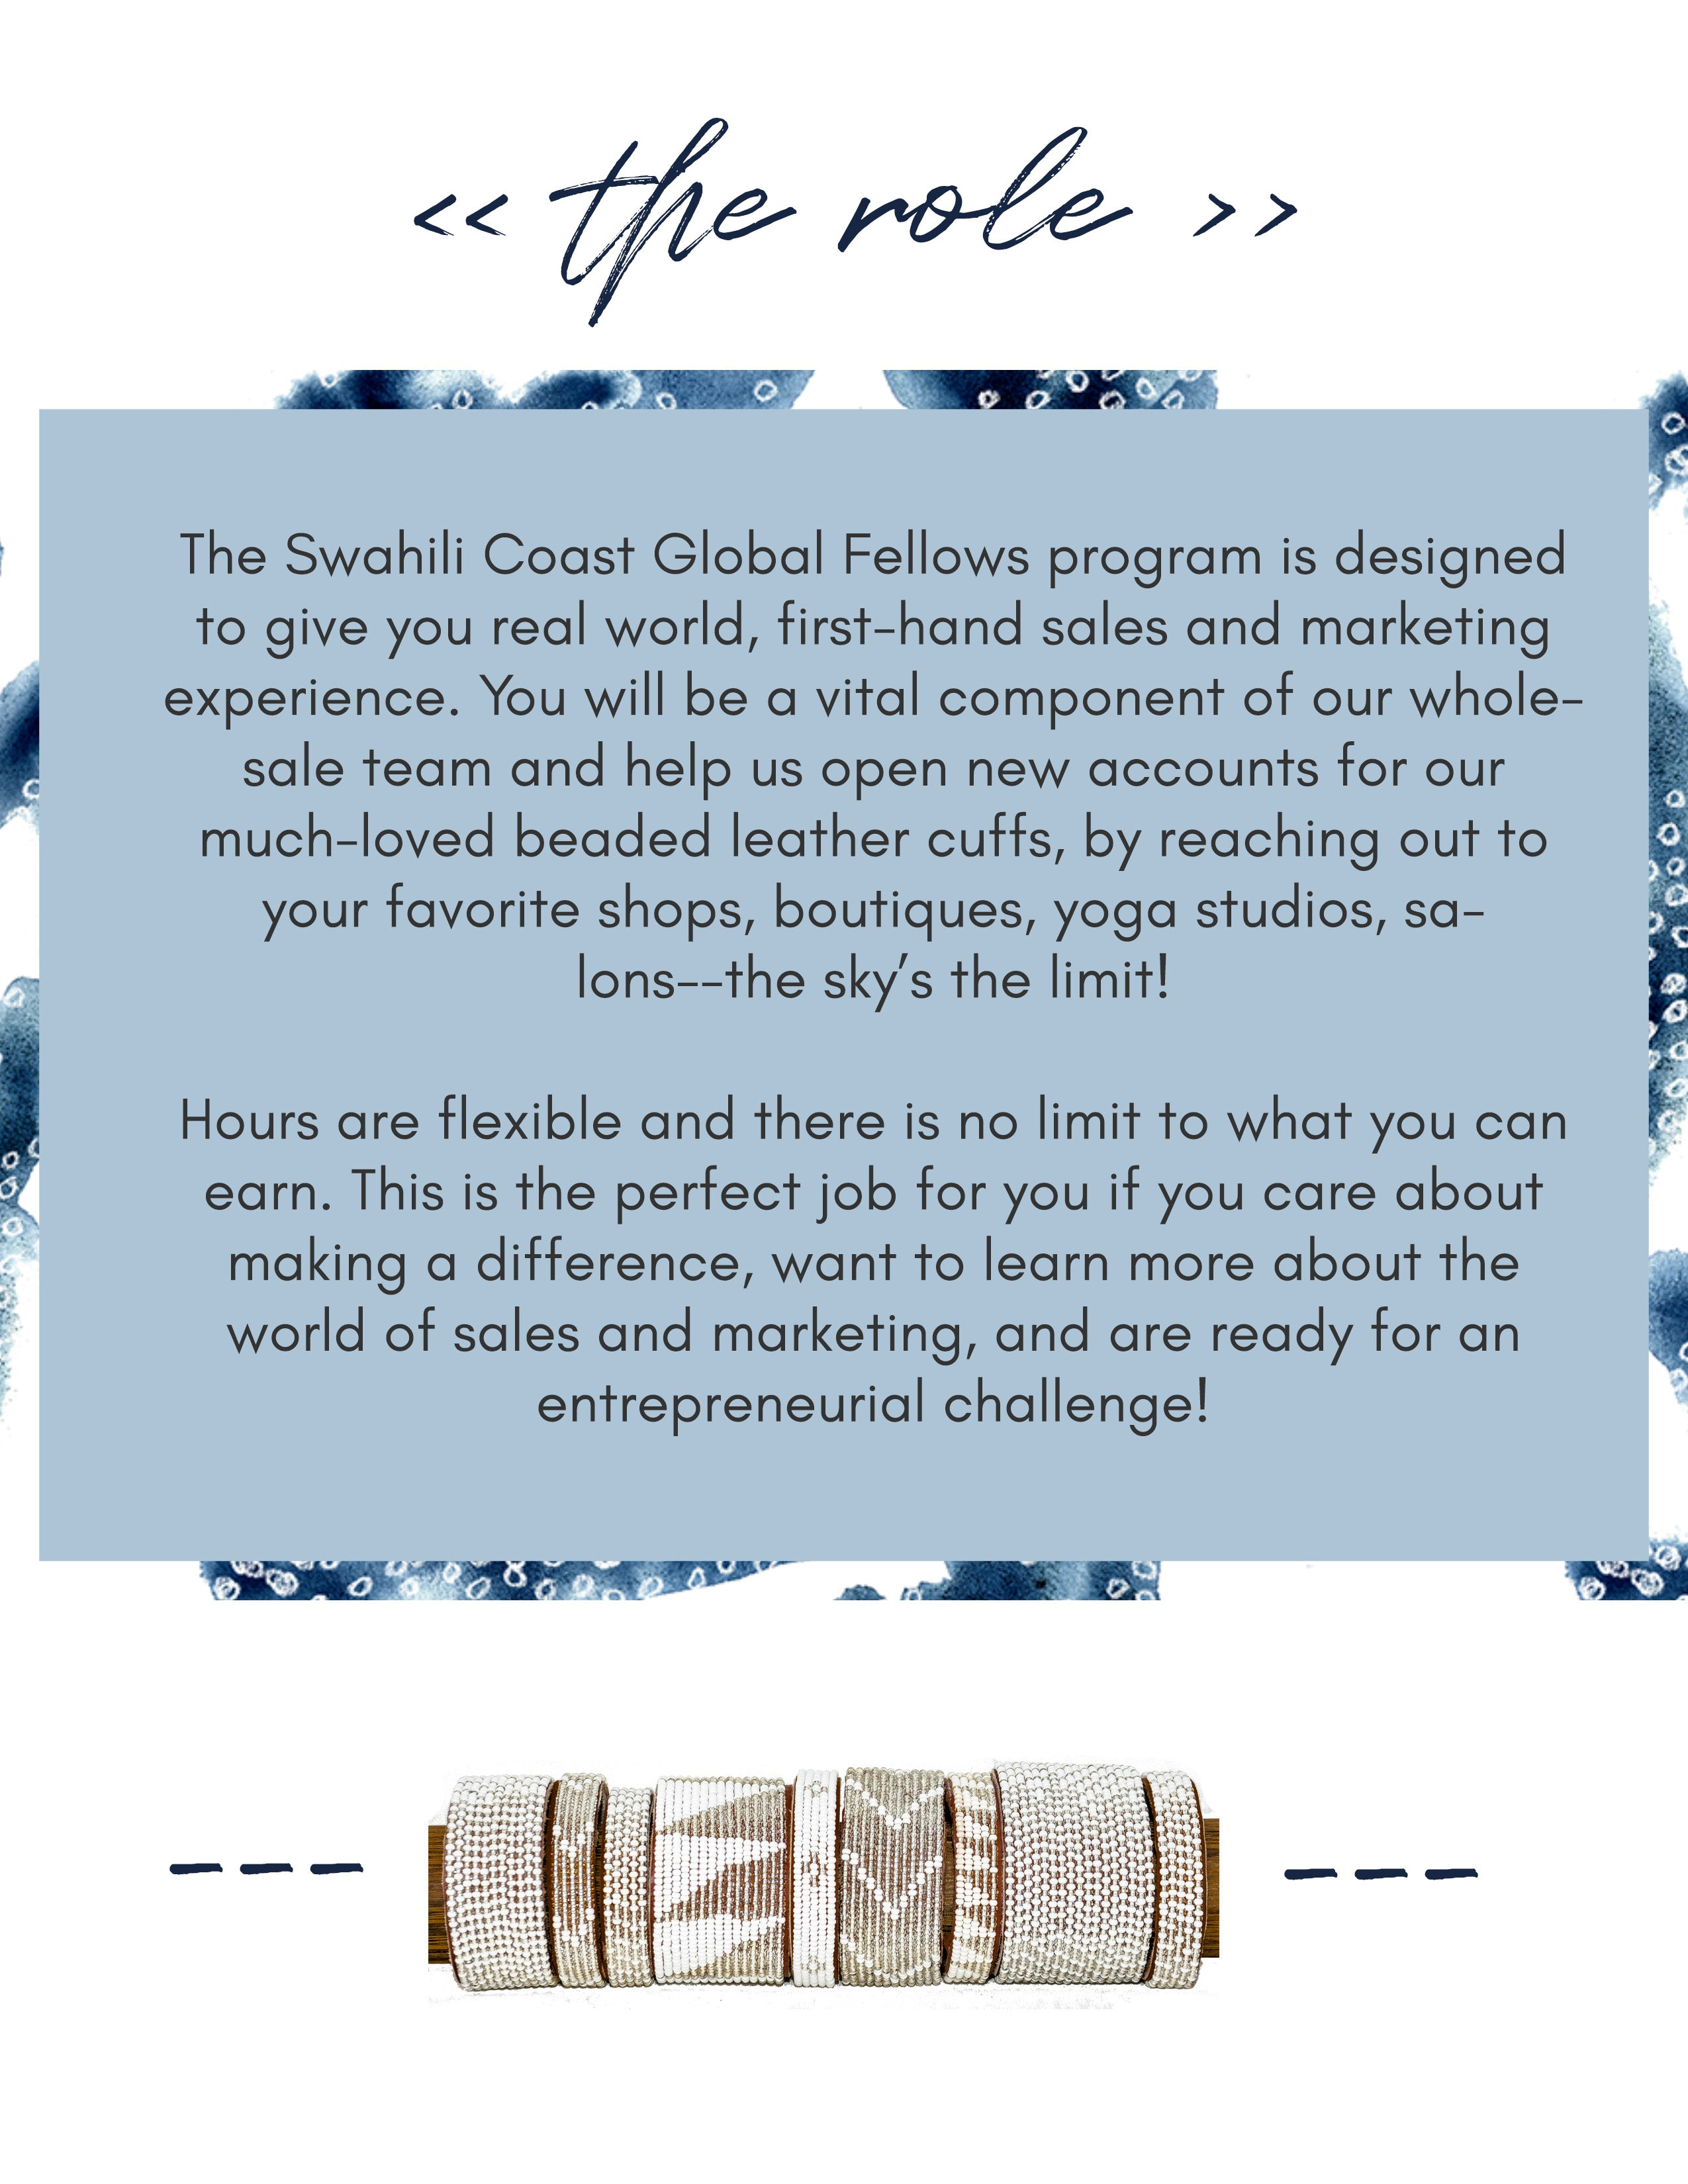 Swahili Coast Global Fellows Guide Page 2. Fair trade accessories ethically handmade by empowered artisans in East Africa.